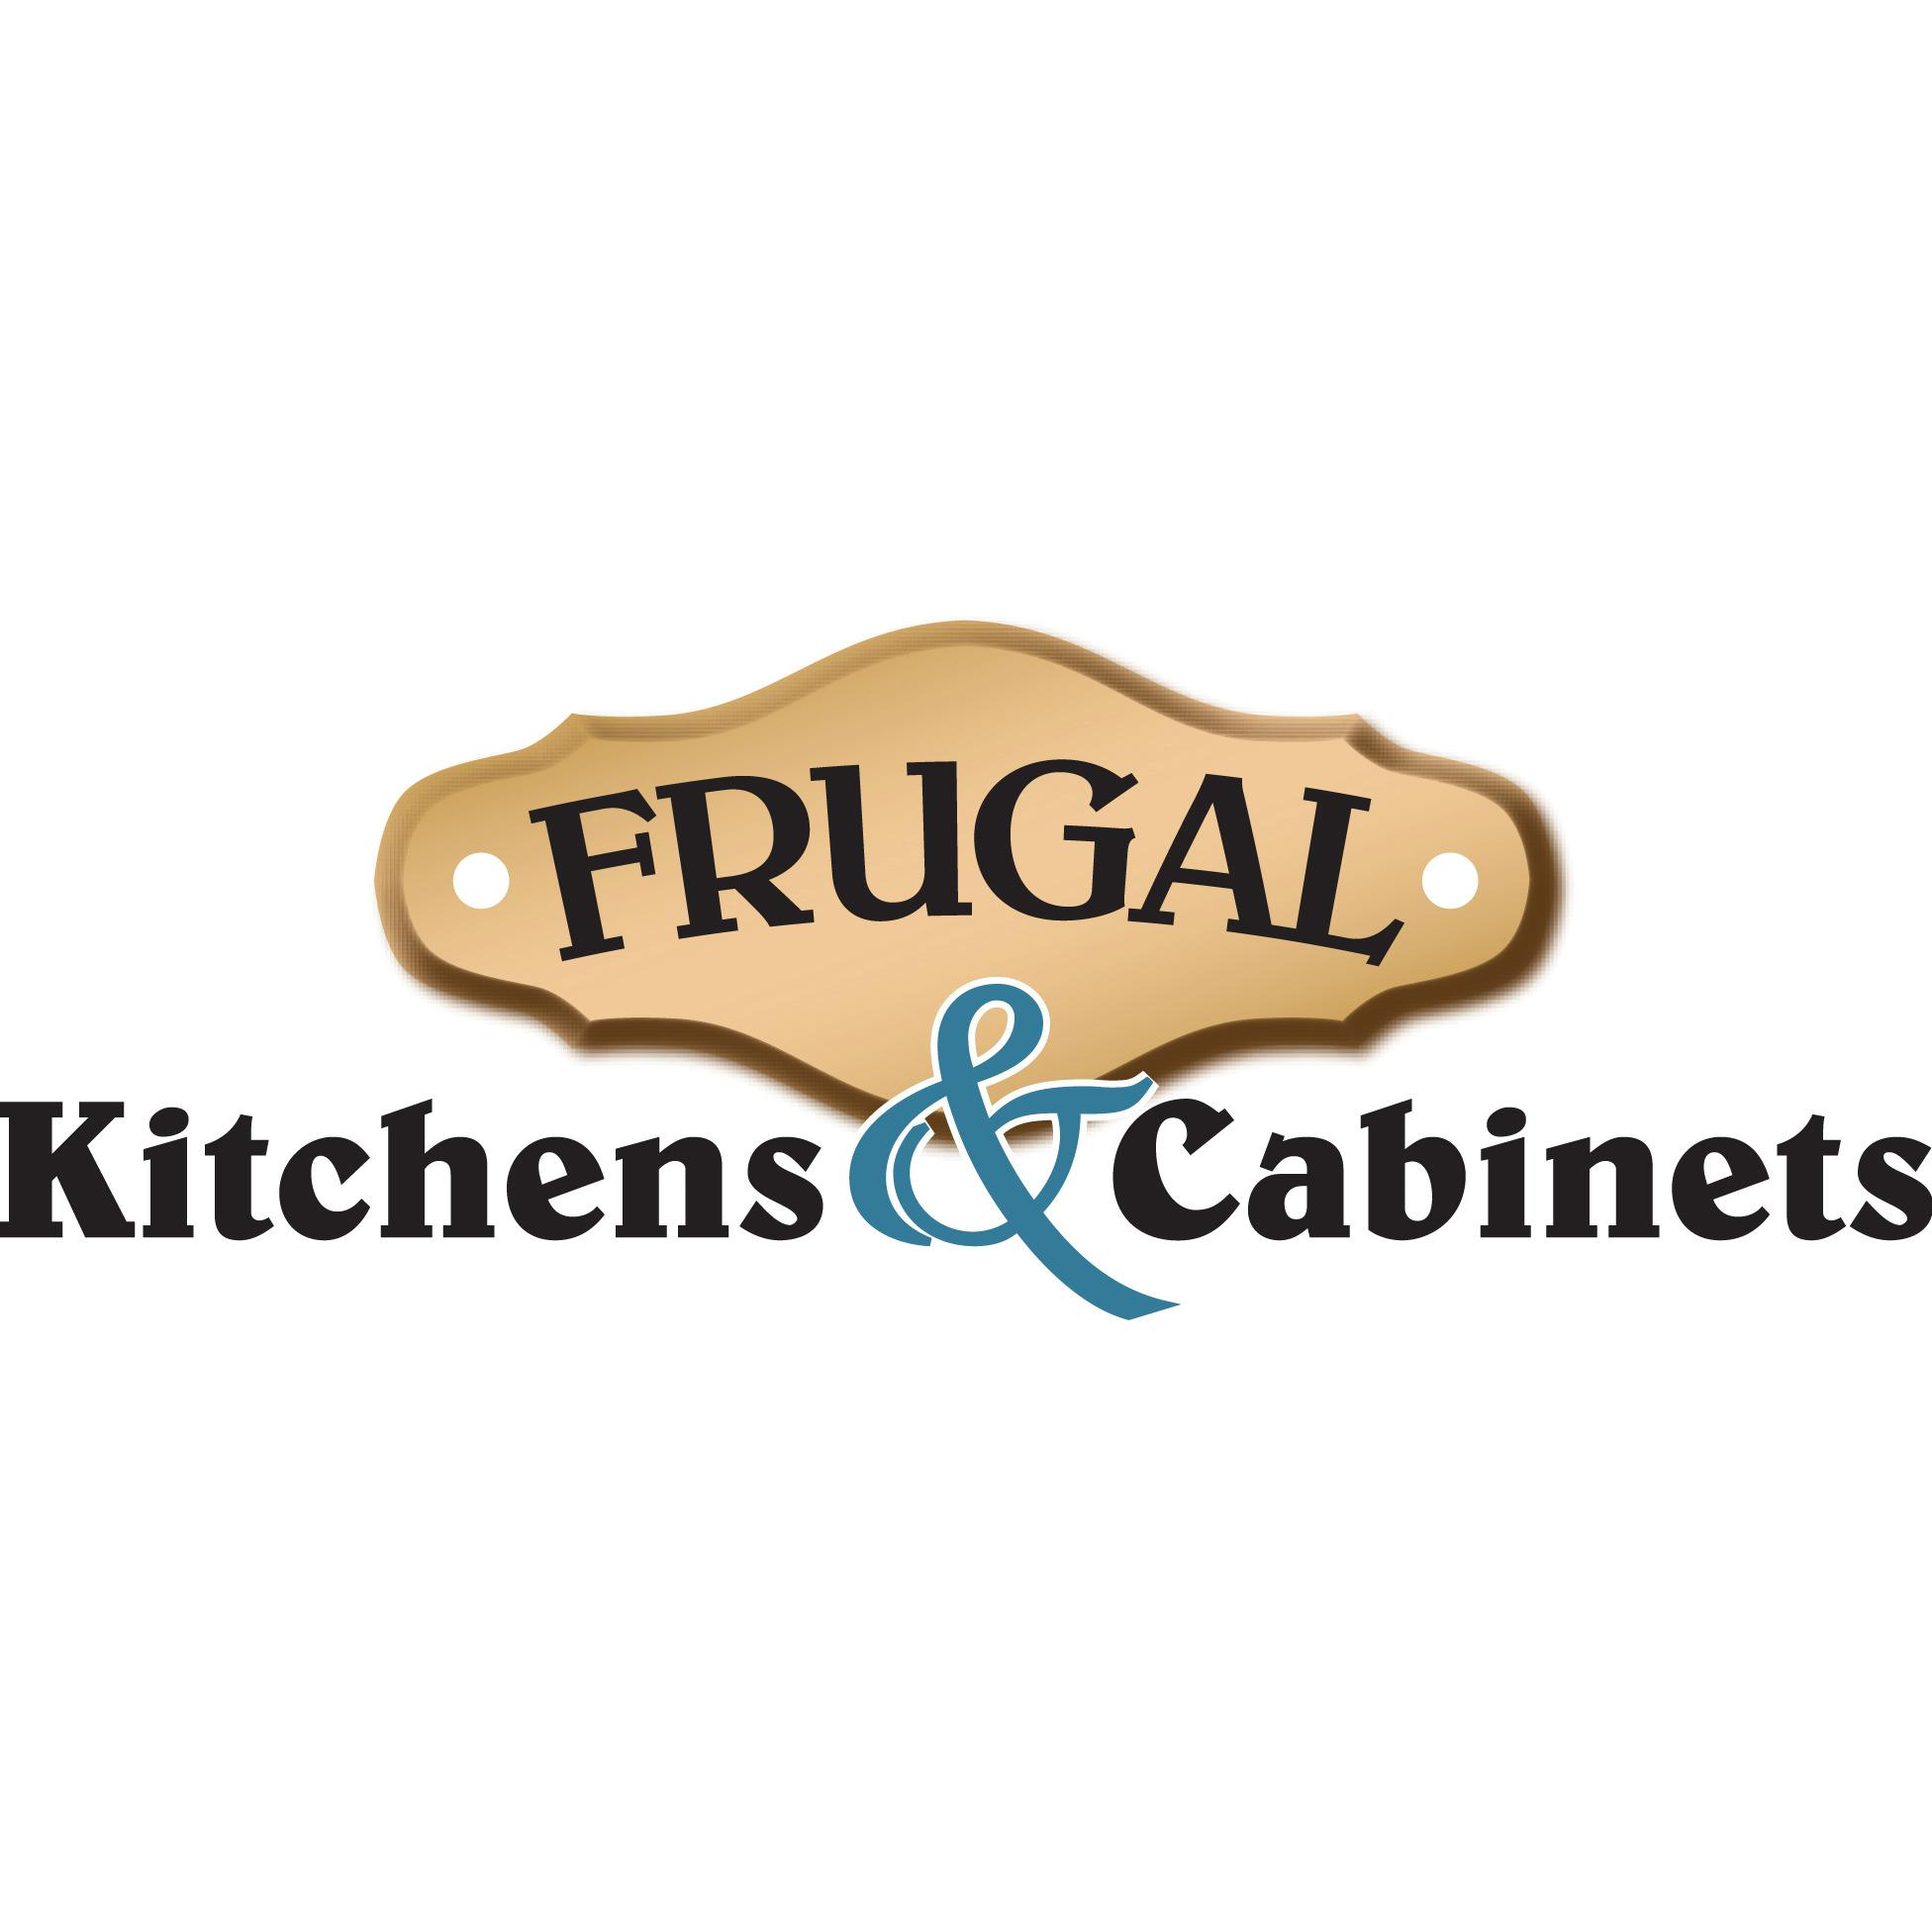 Frugal Kitchens & Cabinets